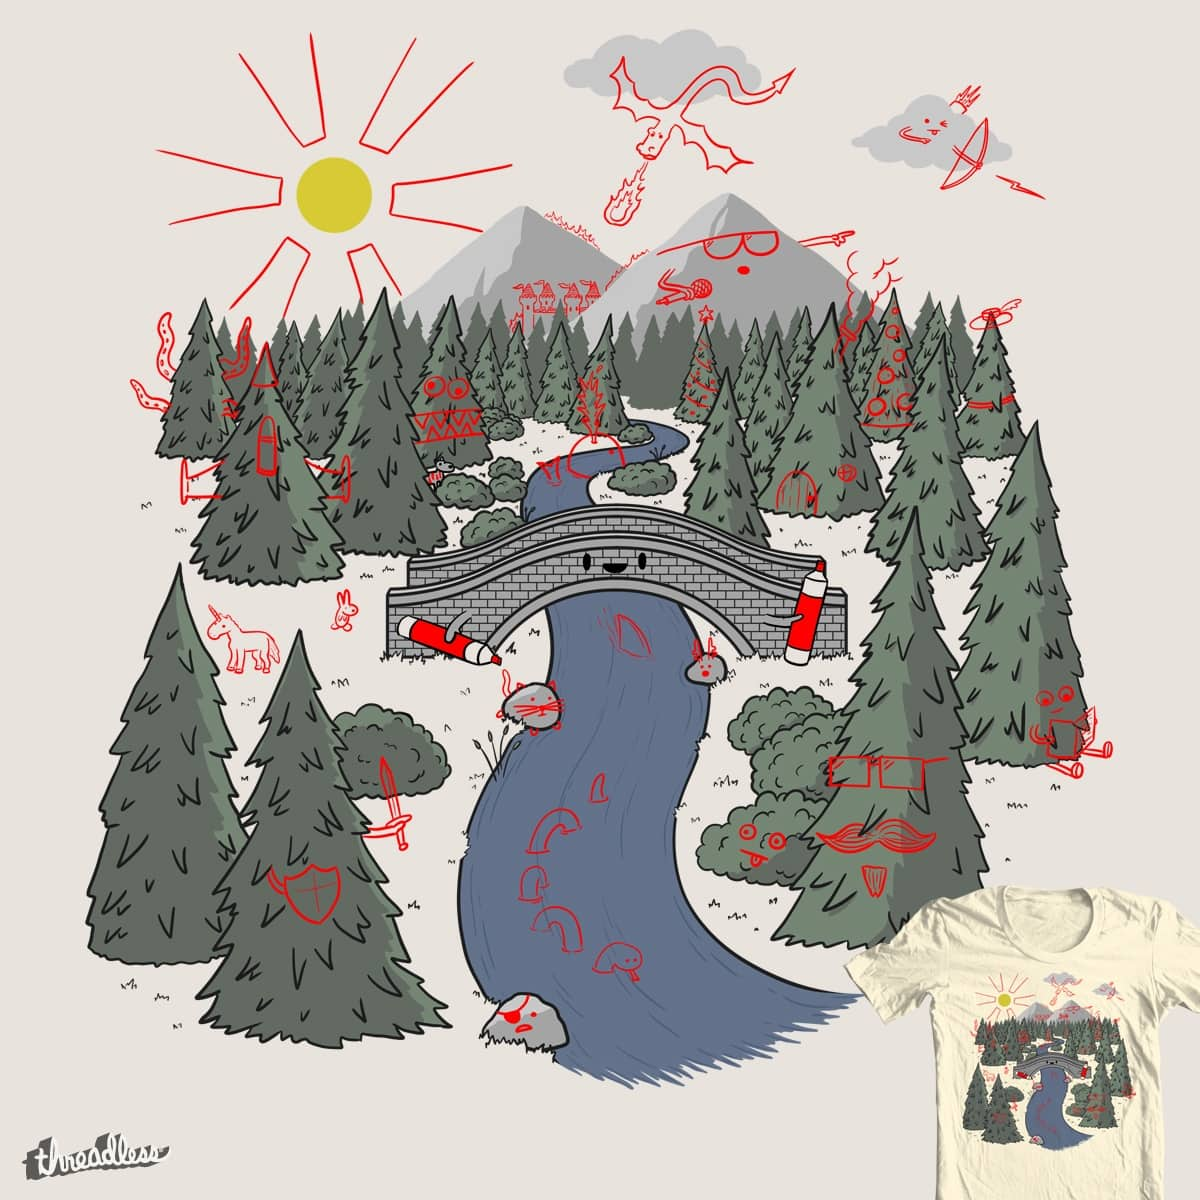 Draw Bridge by FRICKINAWESOME and P0ckets on Threadless